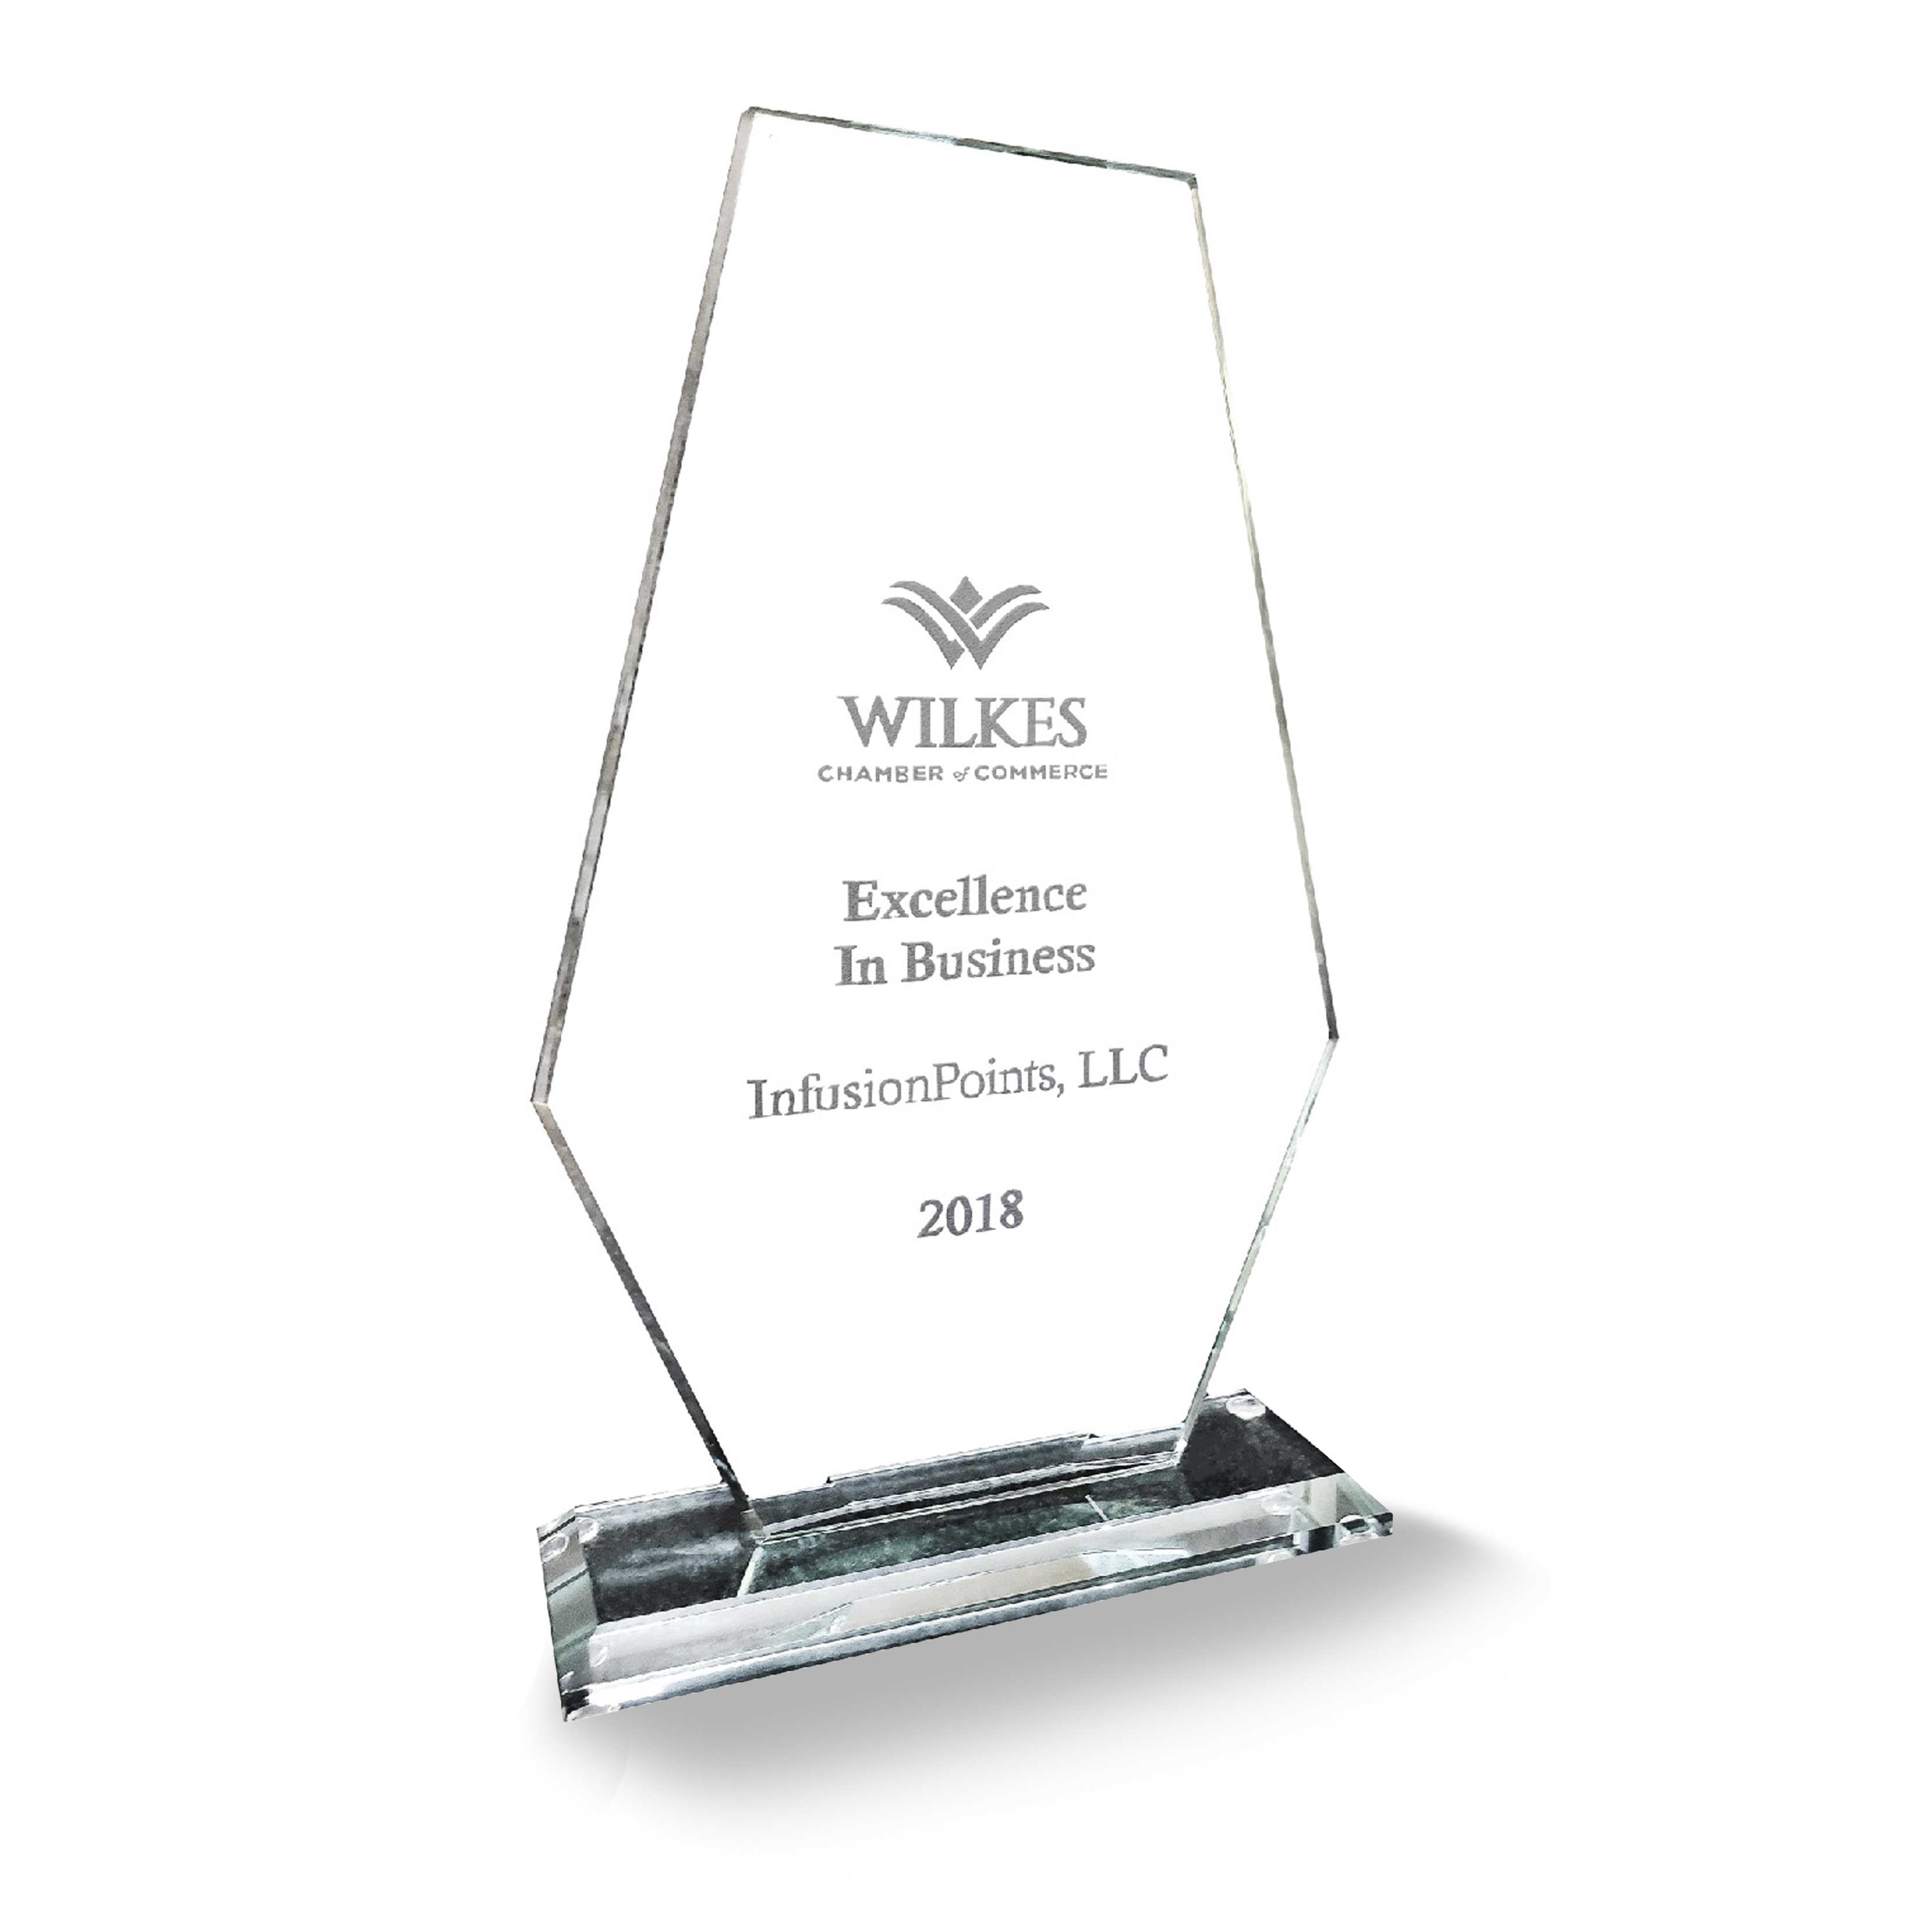 2018 Wilkes Chamber of Commerce Excellence in Business